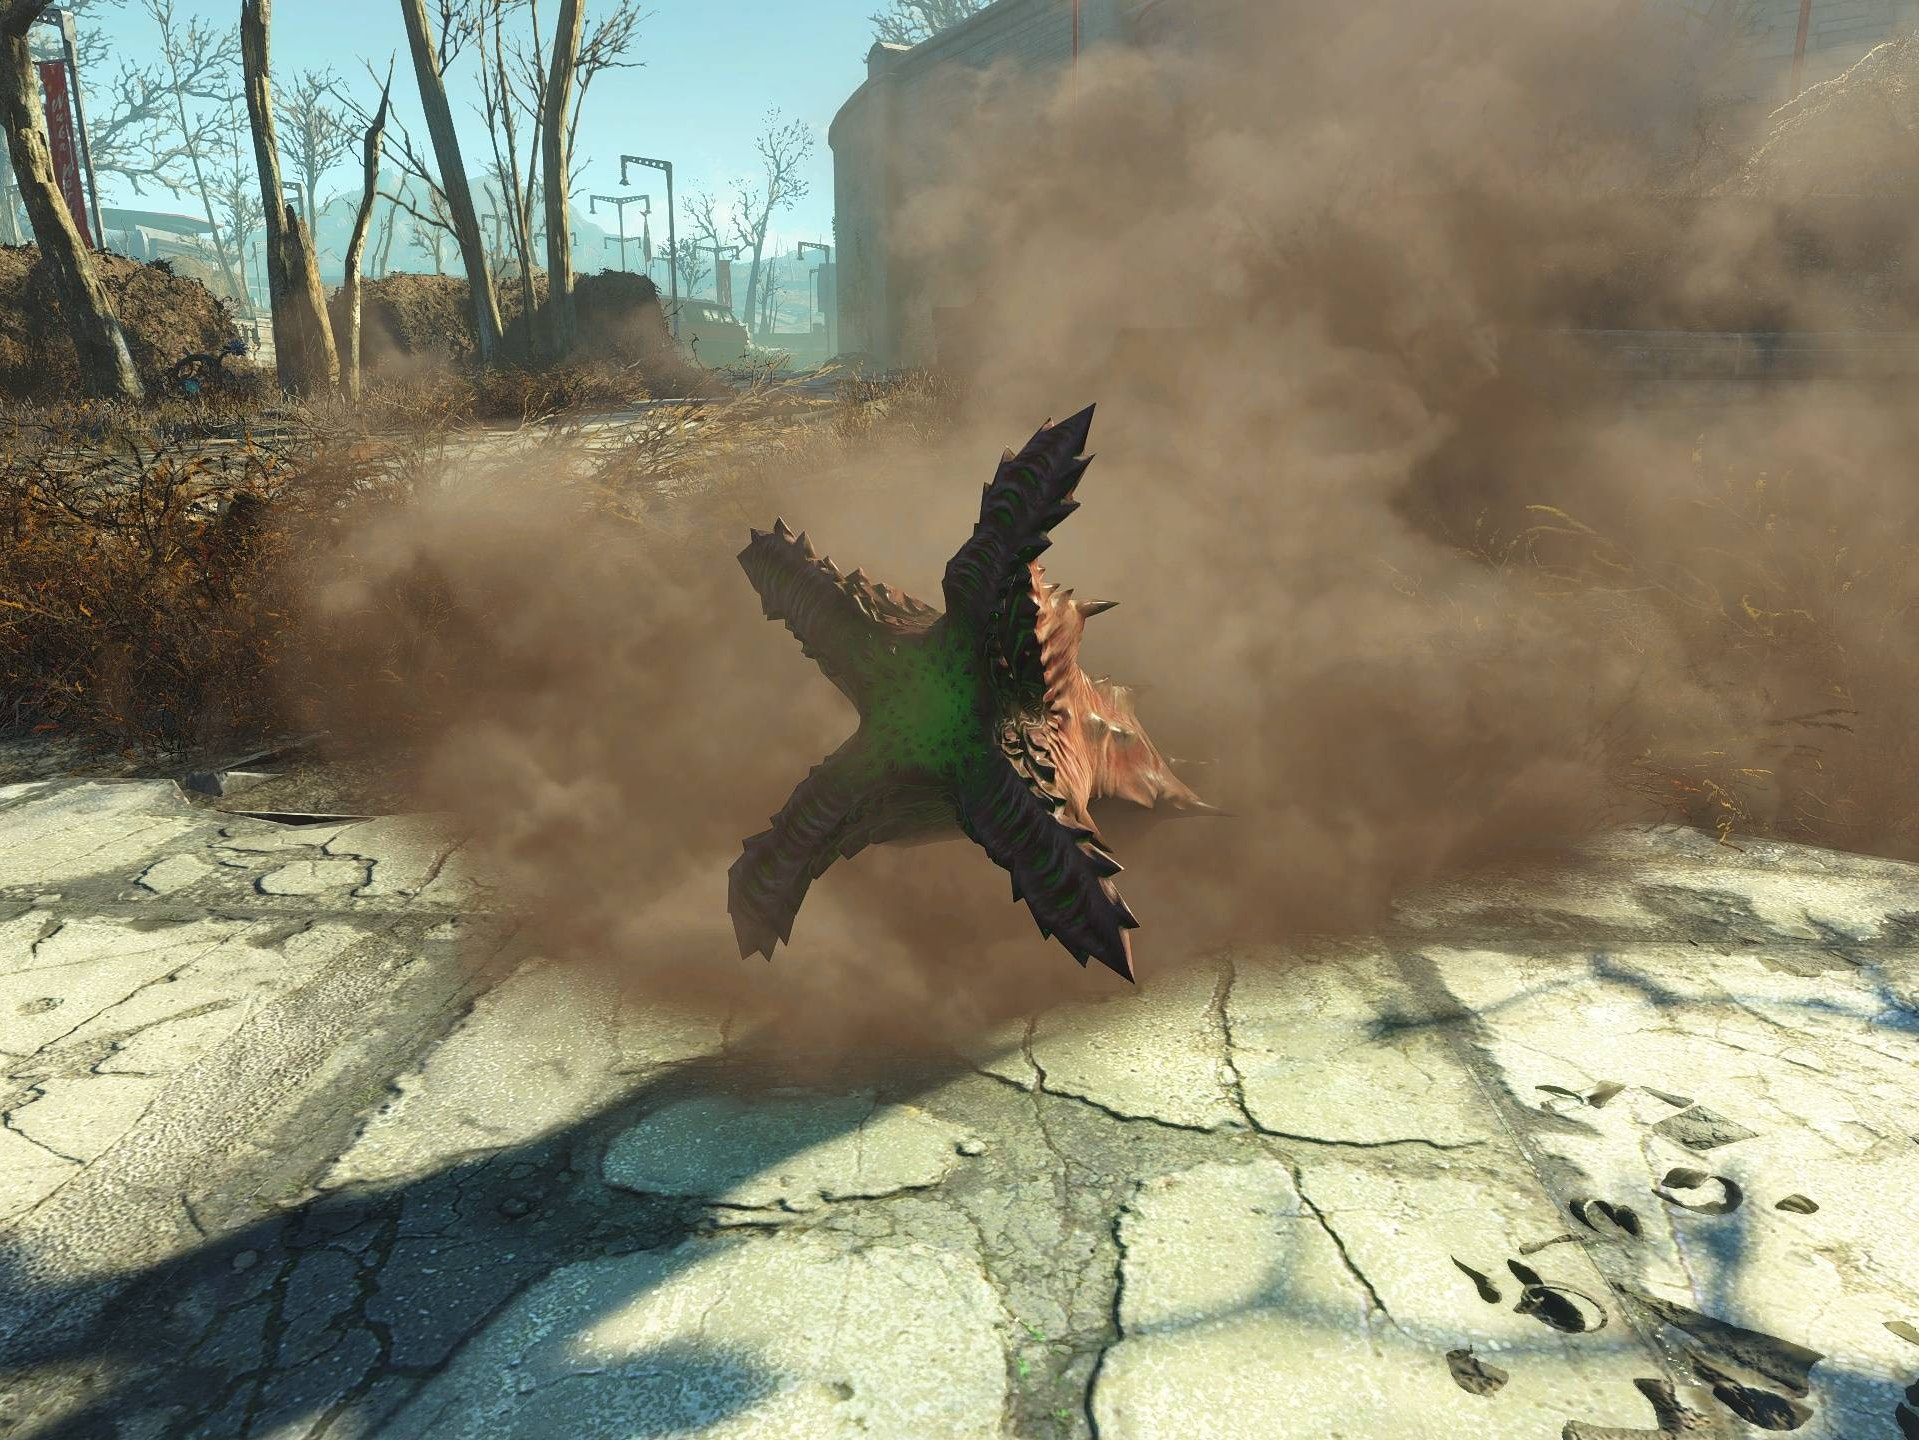 The Best 'Fallout 4' Enemy Is a Tribute to 'Tremors'